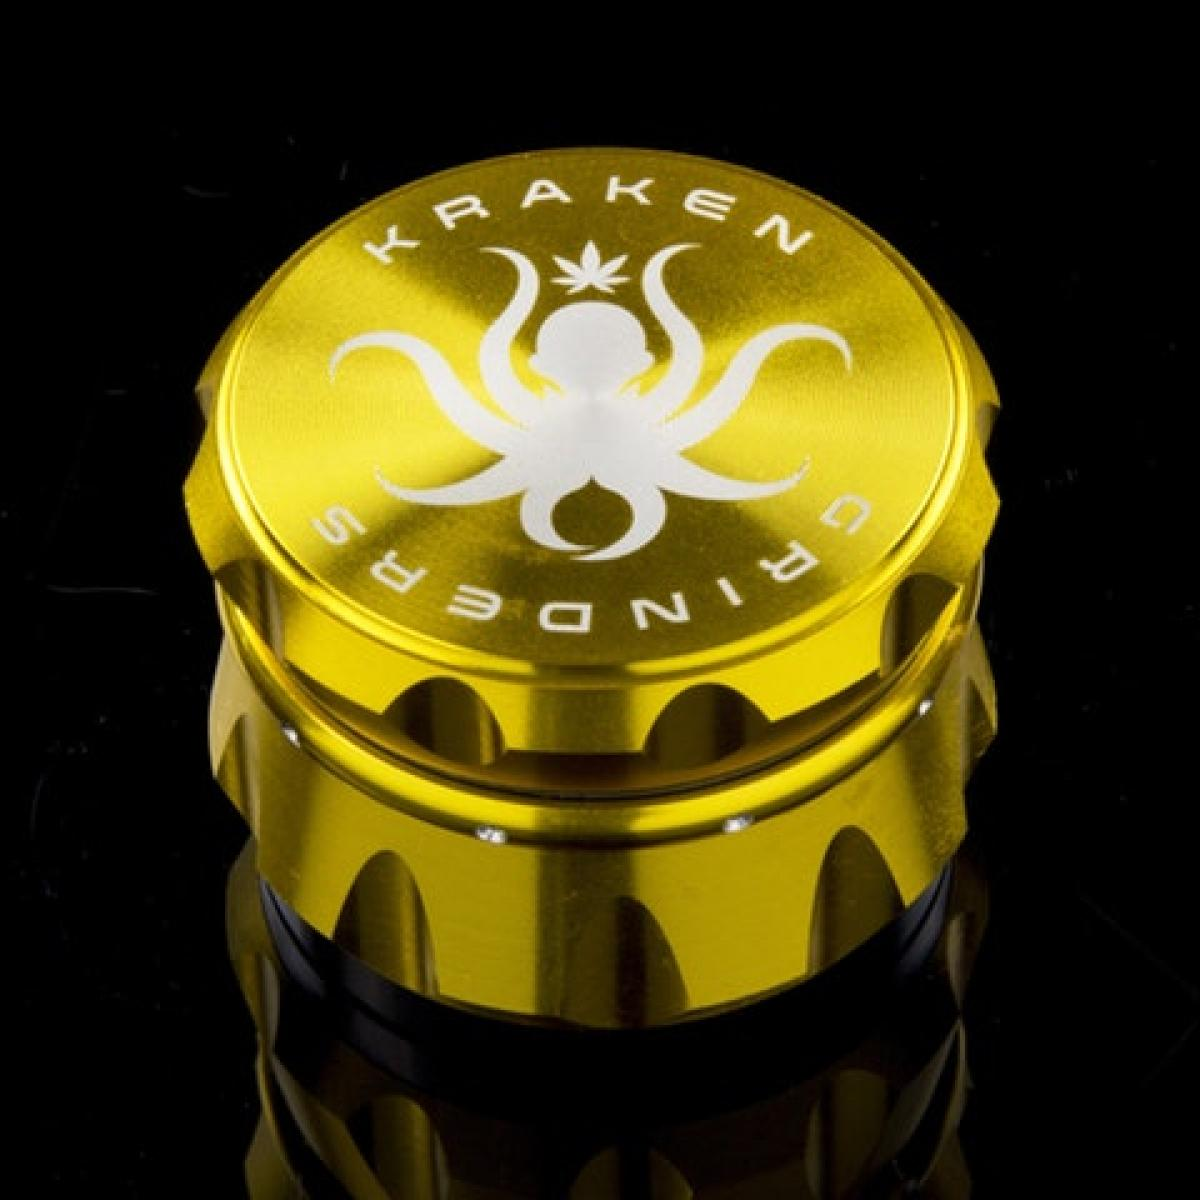 Kraken 2.5 inch 4-part Diamond Ridge Grinder